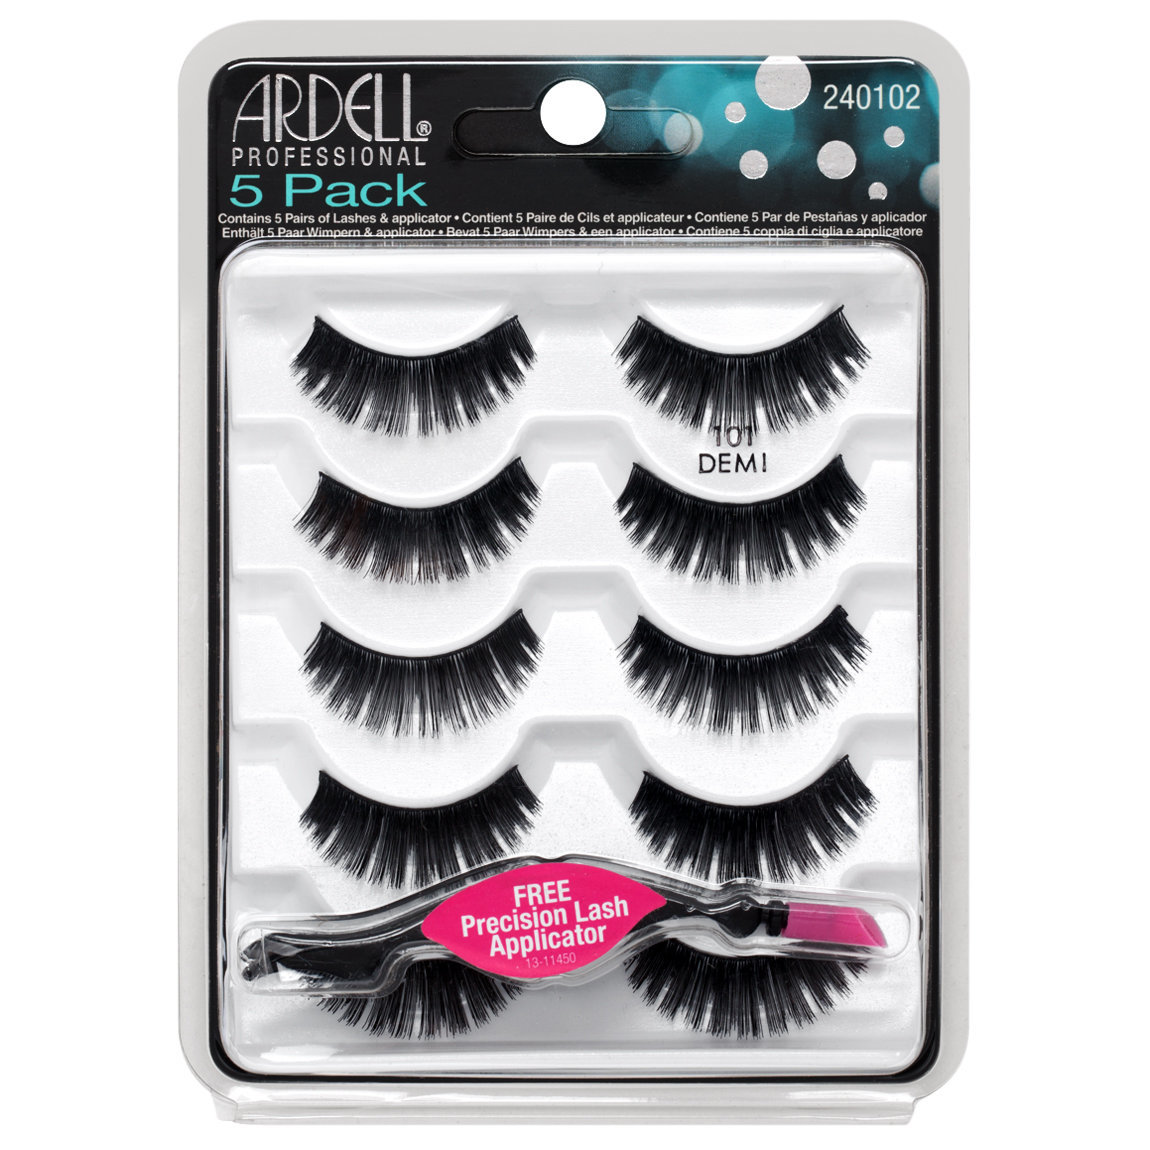 Ardell 5 Pack Natural 101 Black